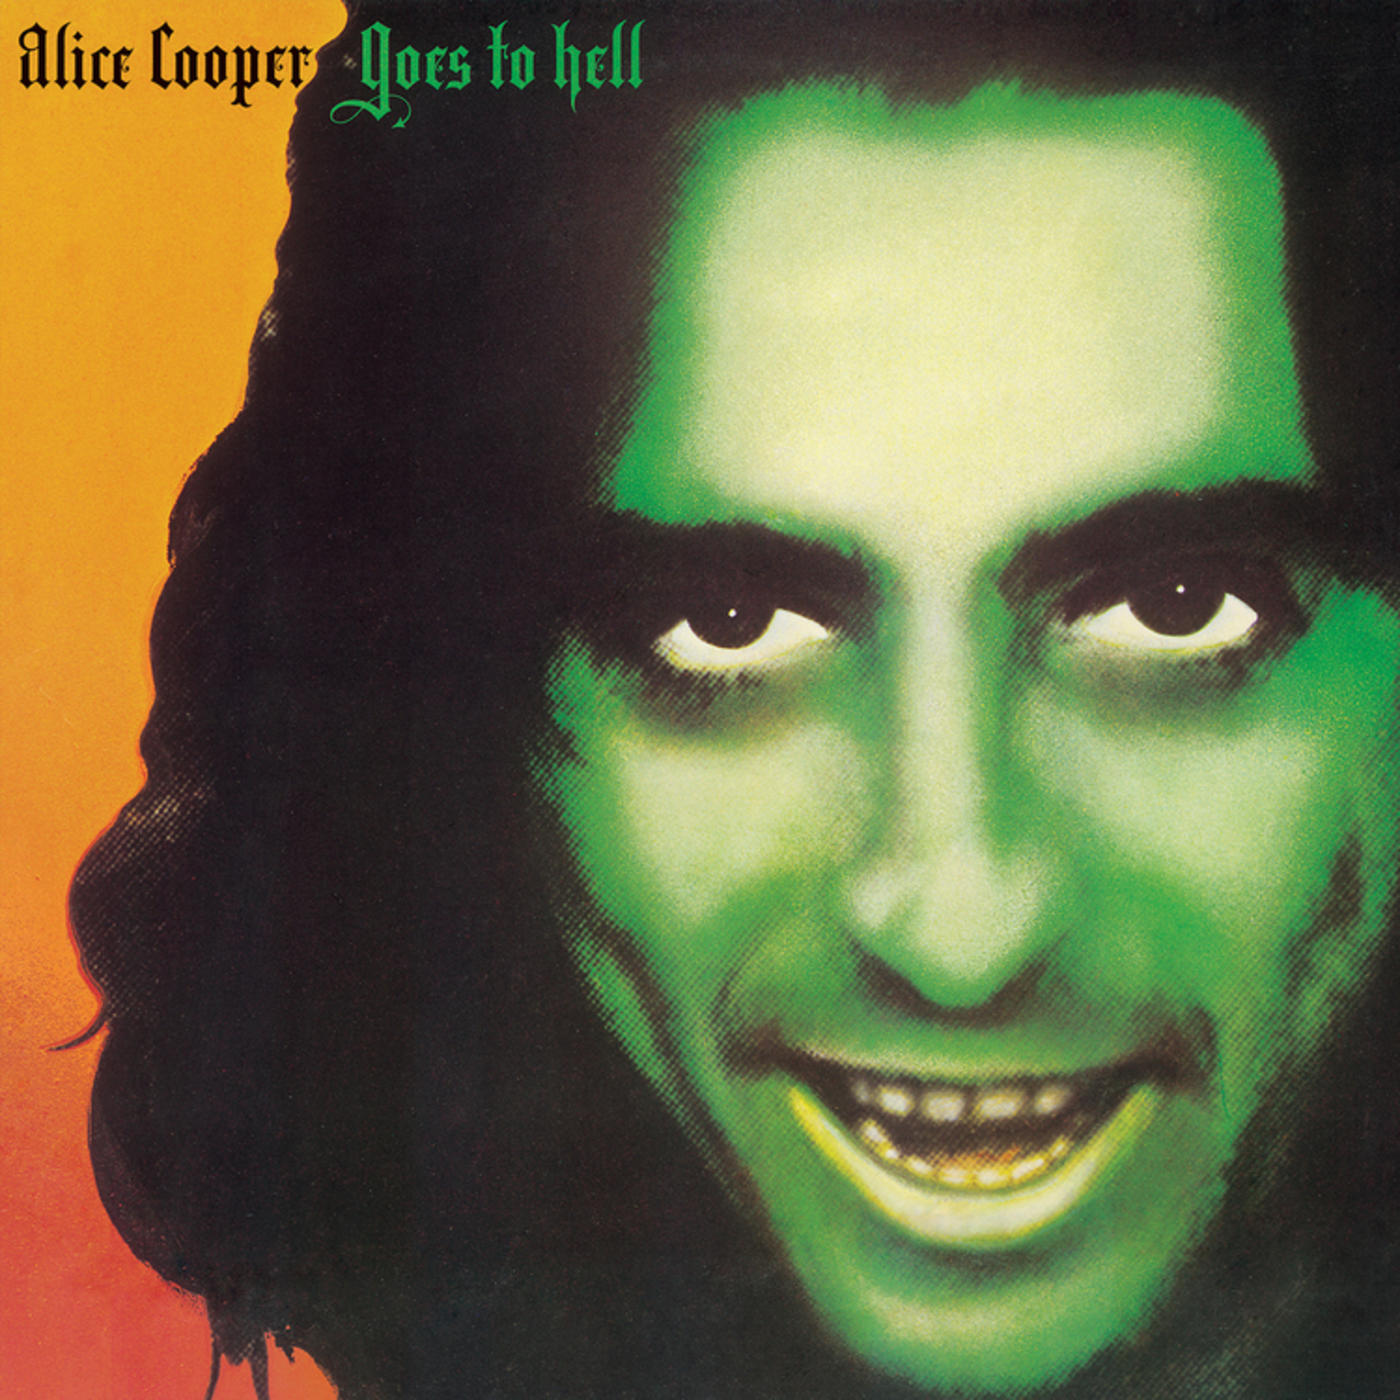 Alice-Cooper-Goes-to-Hell